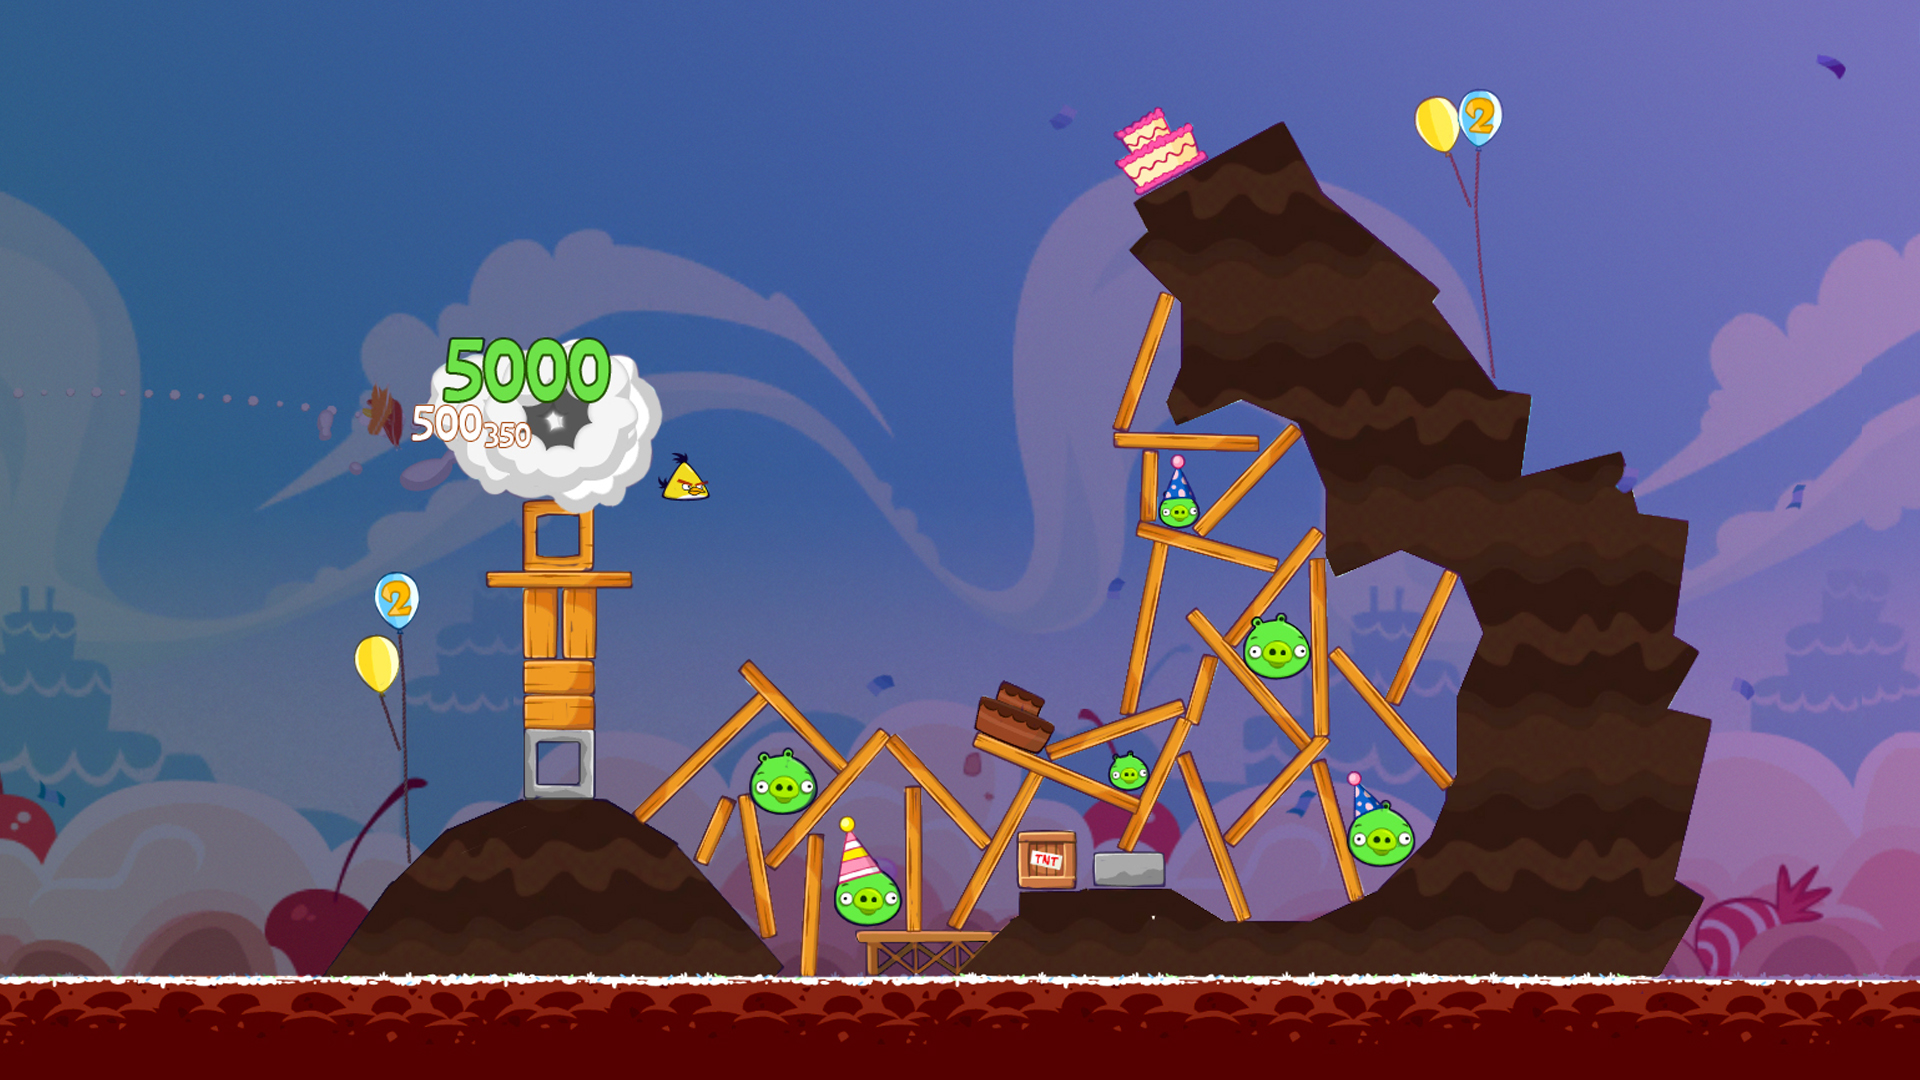 Angry Birds continued influencing games long after its big moment